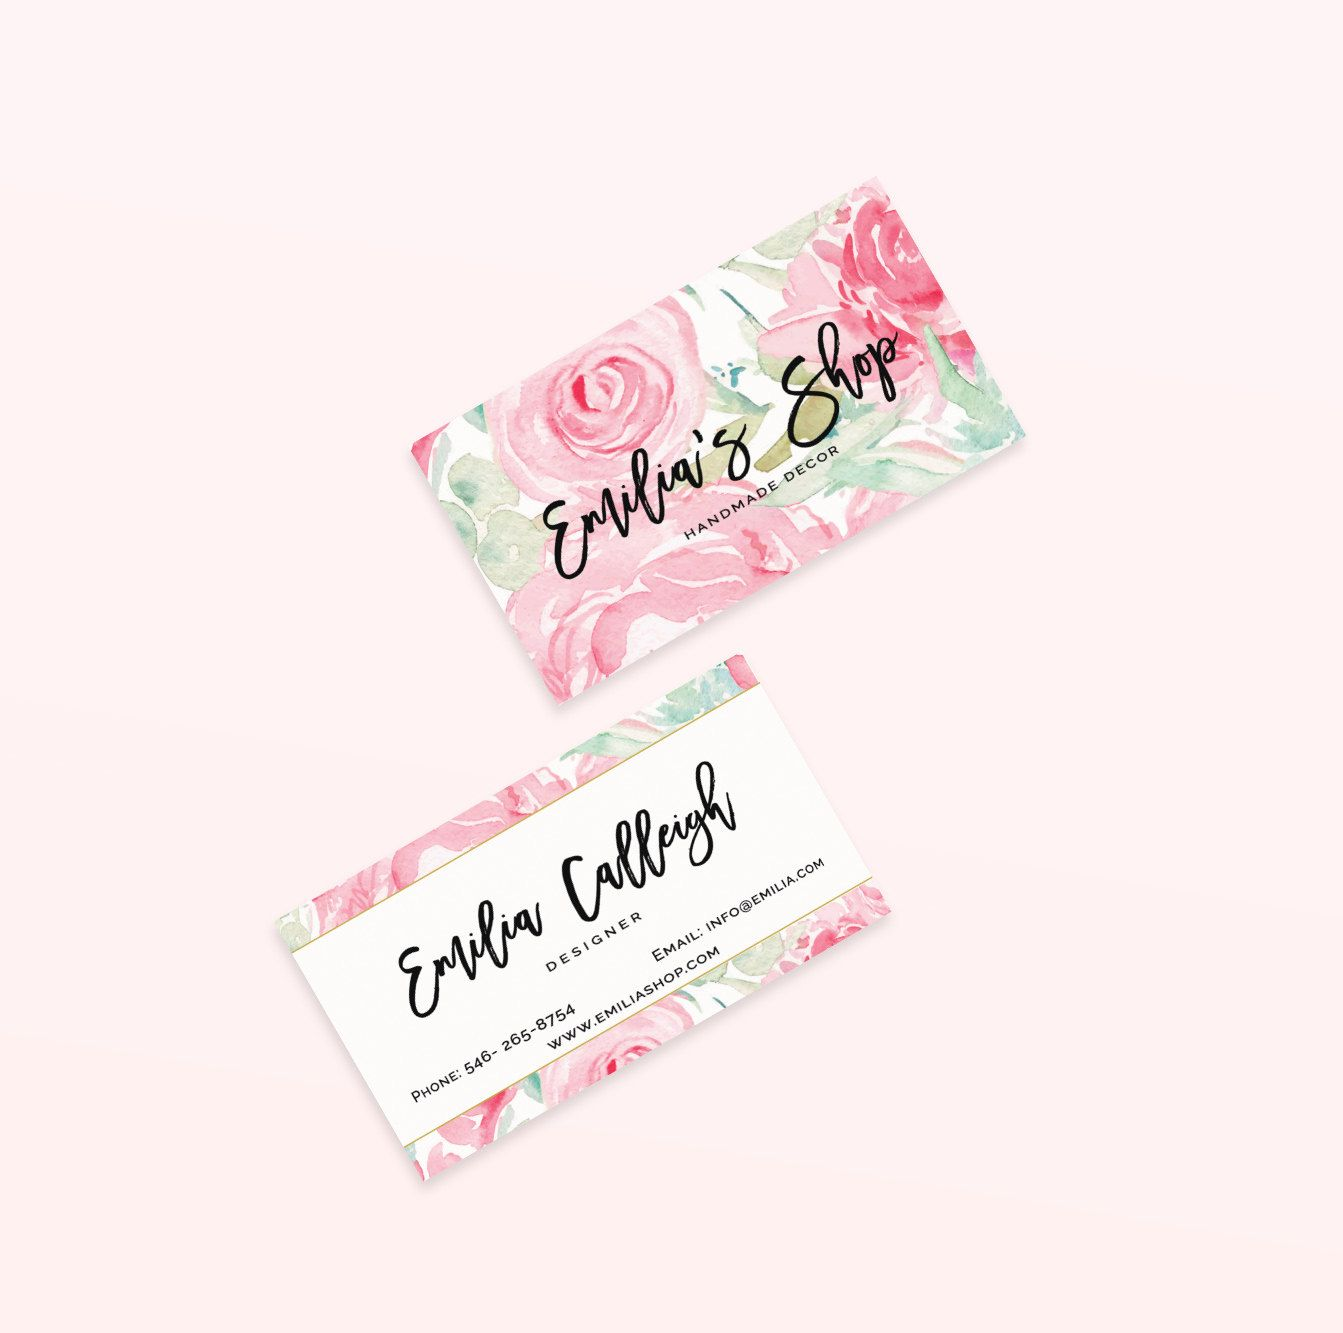 Image result for sample calligraphy business cards | Calligraphy ...